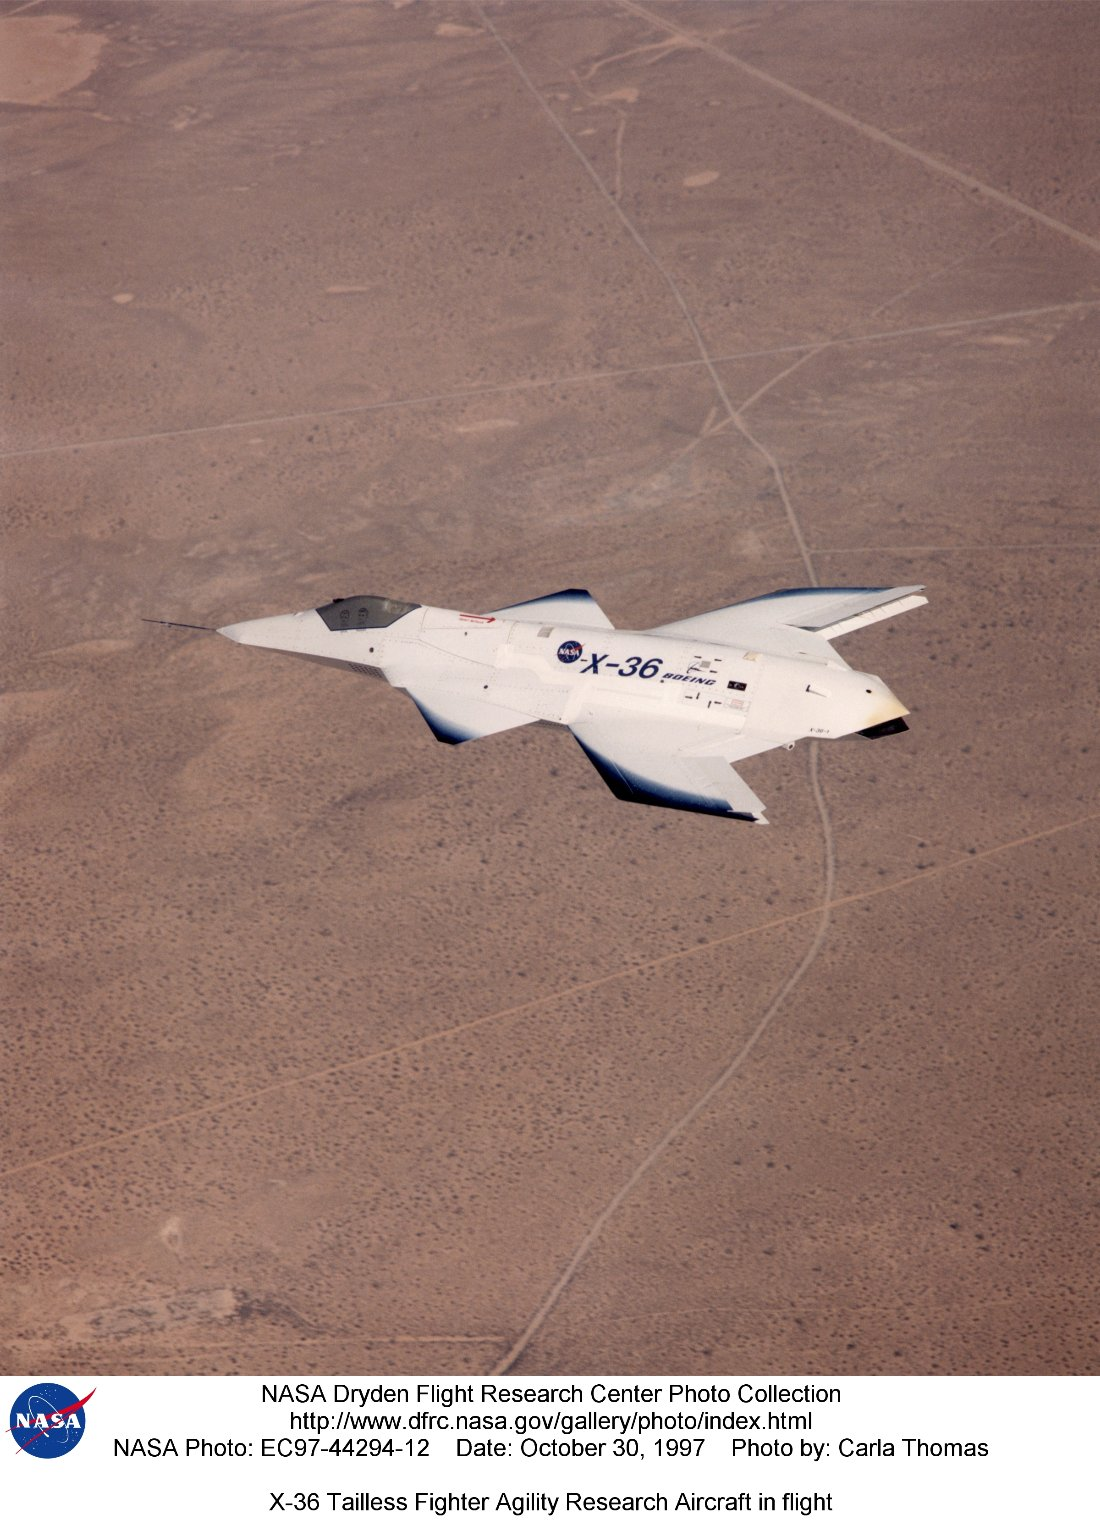 X-36 Tailless Fighter Agility Research Aircraft in flight